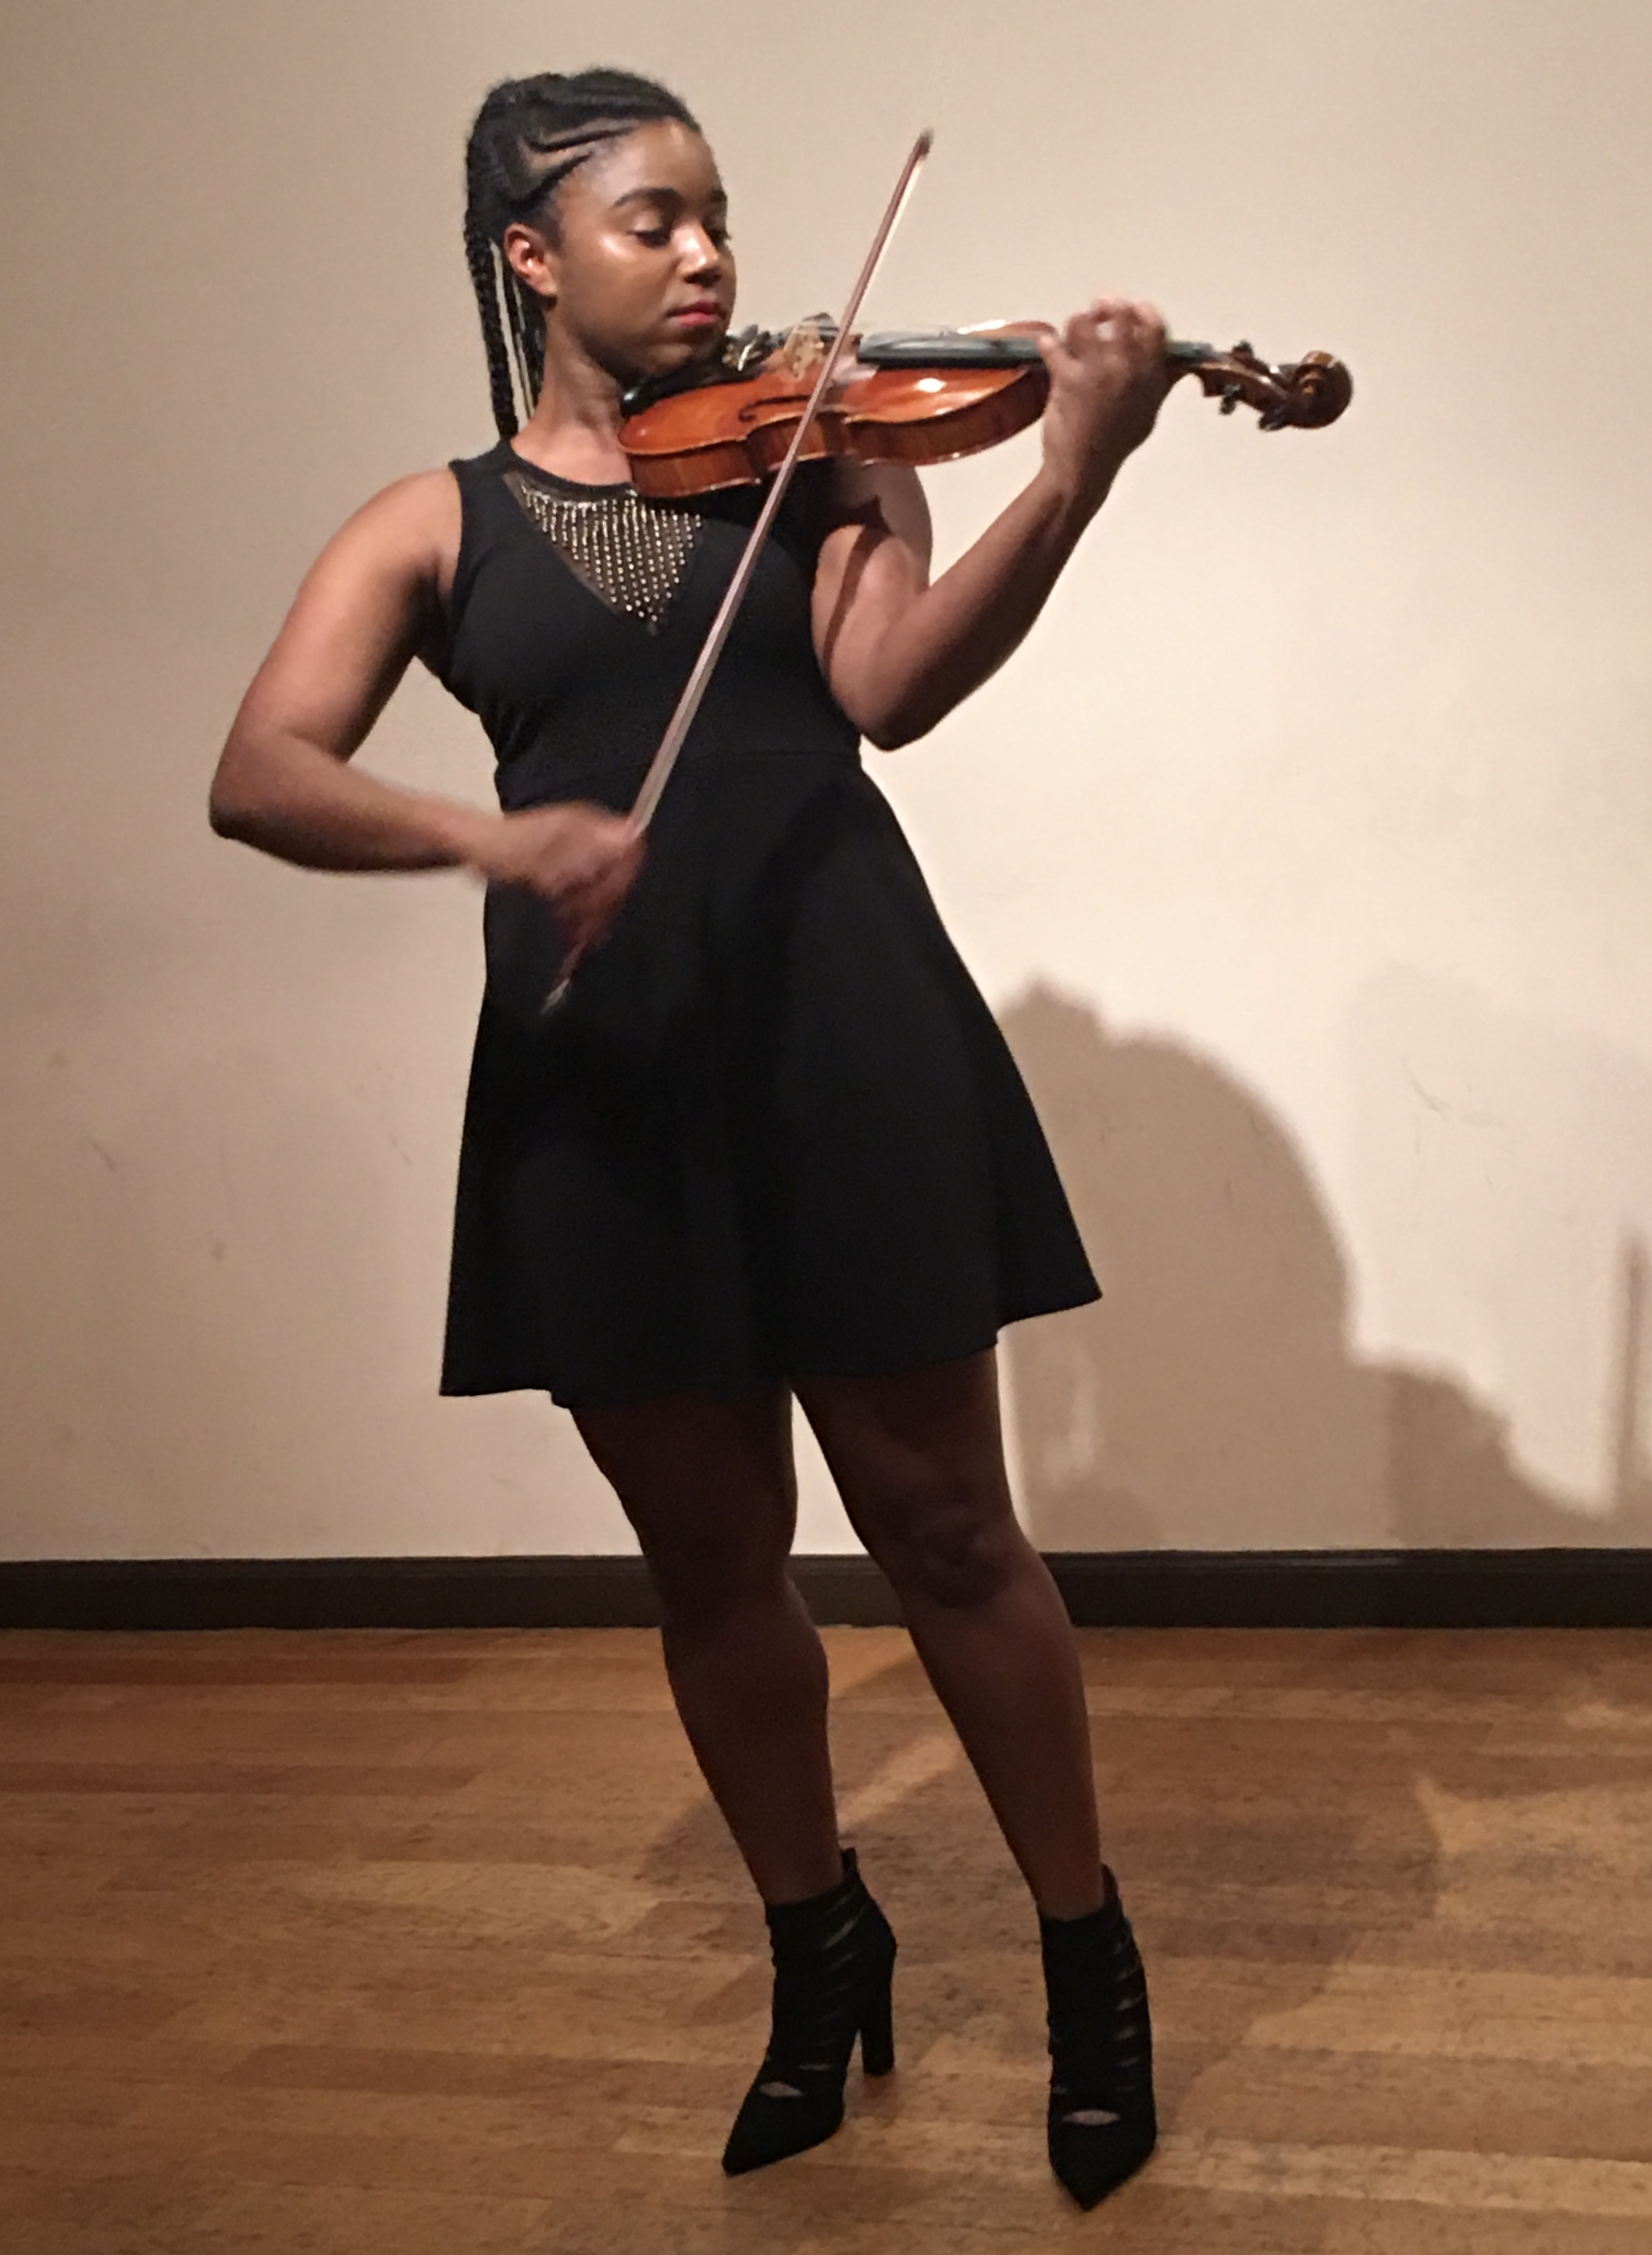 Jordan Pettis - Violin - Born and raised in Denver, Colorado, Jordan Celeste Pettis fell in love with the sound of the violin during her middle school and has . She graduated from the renowned Denver School of the Arts majoring in classical violin and jazz voice. She studied under Ms. Eugenia Alikhanova, first violinist of the Moscow String Quartet. This rigorous training prepared her for a musical journey where she has performed with the Boston Pops, members of the Chicago Symphony; and many other collaborations from classical to funk to hip-hop, and more. After graduating from Illinois Wesleyan University with a Bachelor of Music Performance Degree in 2012, she moved to Boston in 2013 to study Jazz Voice and Jazz Violin at the New England Conservatory of Music- receiving a Certificate of Jazz Performance in January of 2015.In 2015, Jordan became a member of the Ill-Harmonic Orchestra and has performed with them at the Tobin Center, the Kennedy Center, and Carnegie Hall among other fantastic venues.